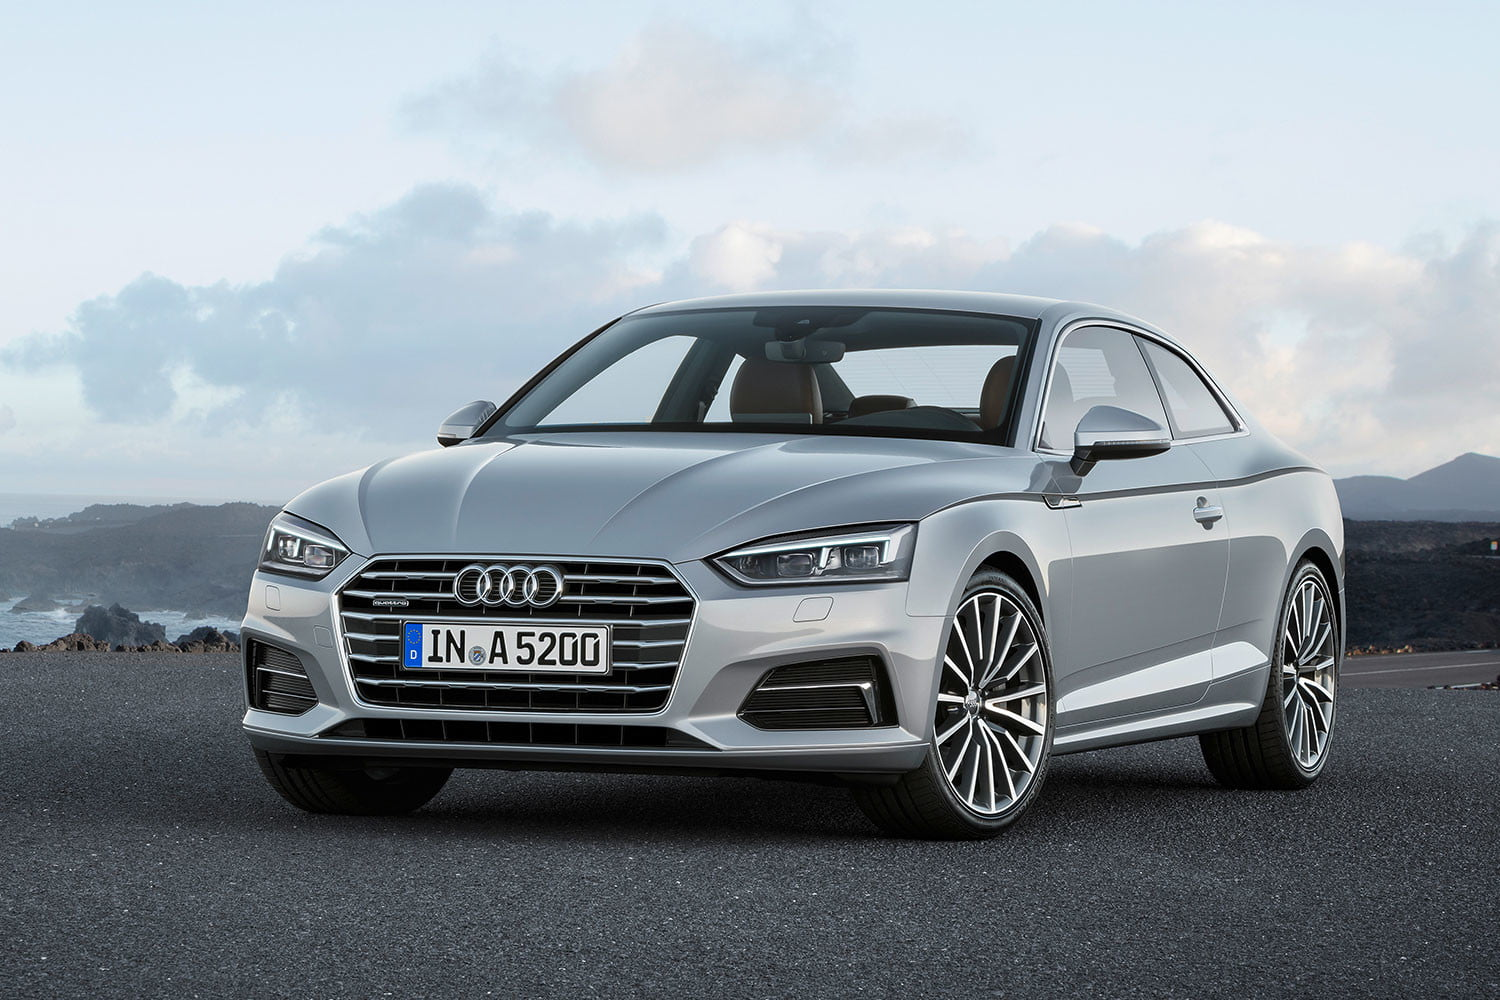 2017 audi a5 news pictures specs performance coupe 002